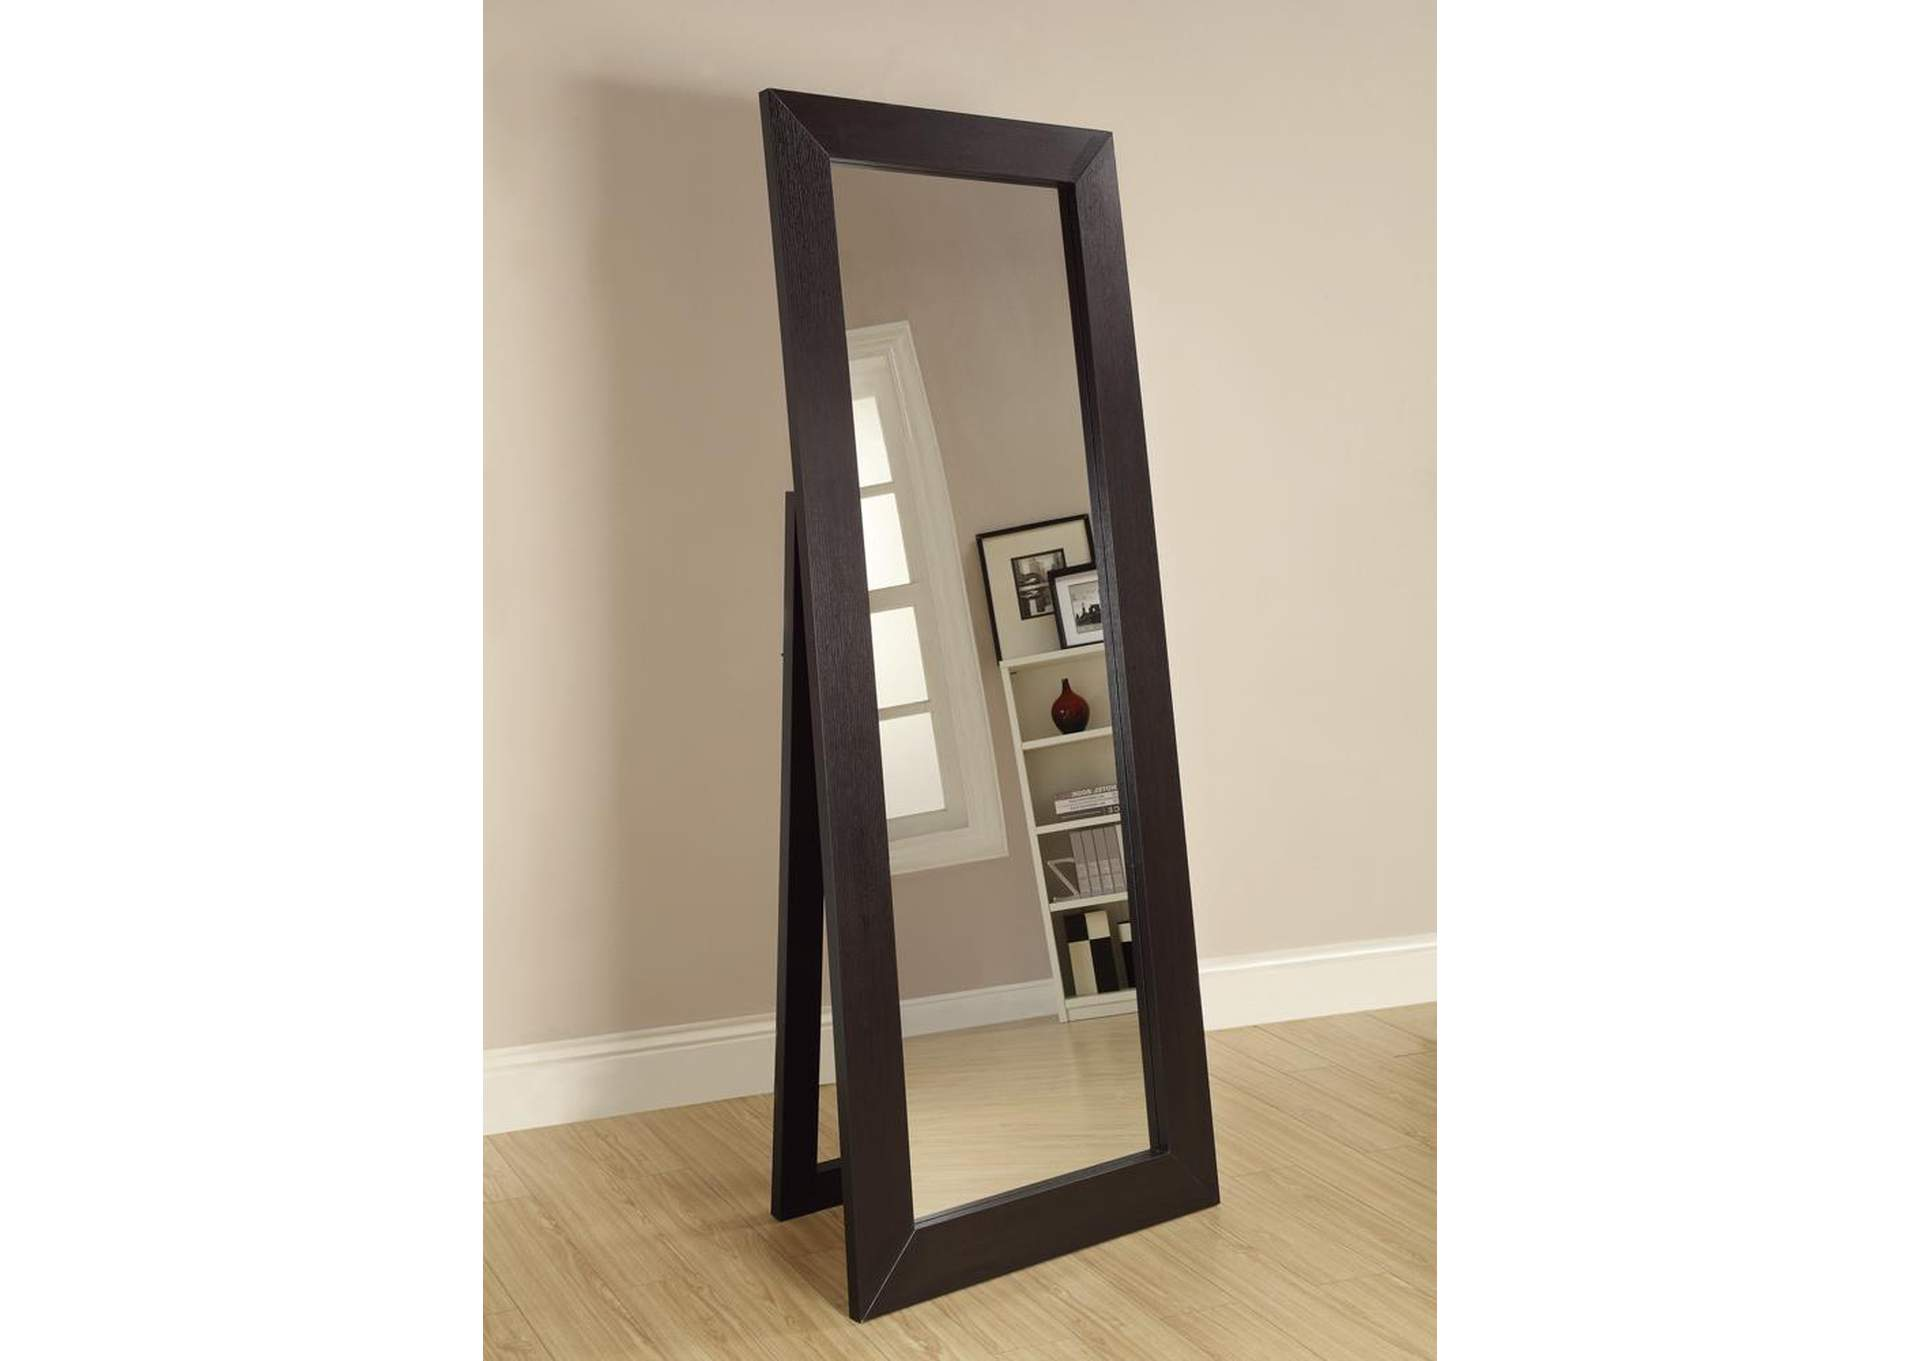 Cappuccino Mirror,ABF Coaster Furniture